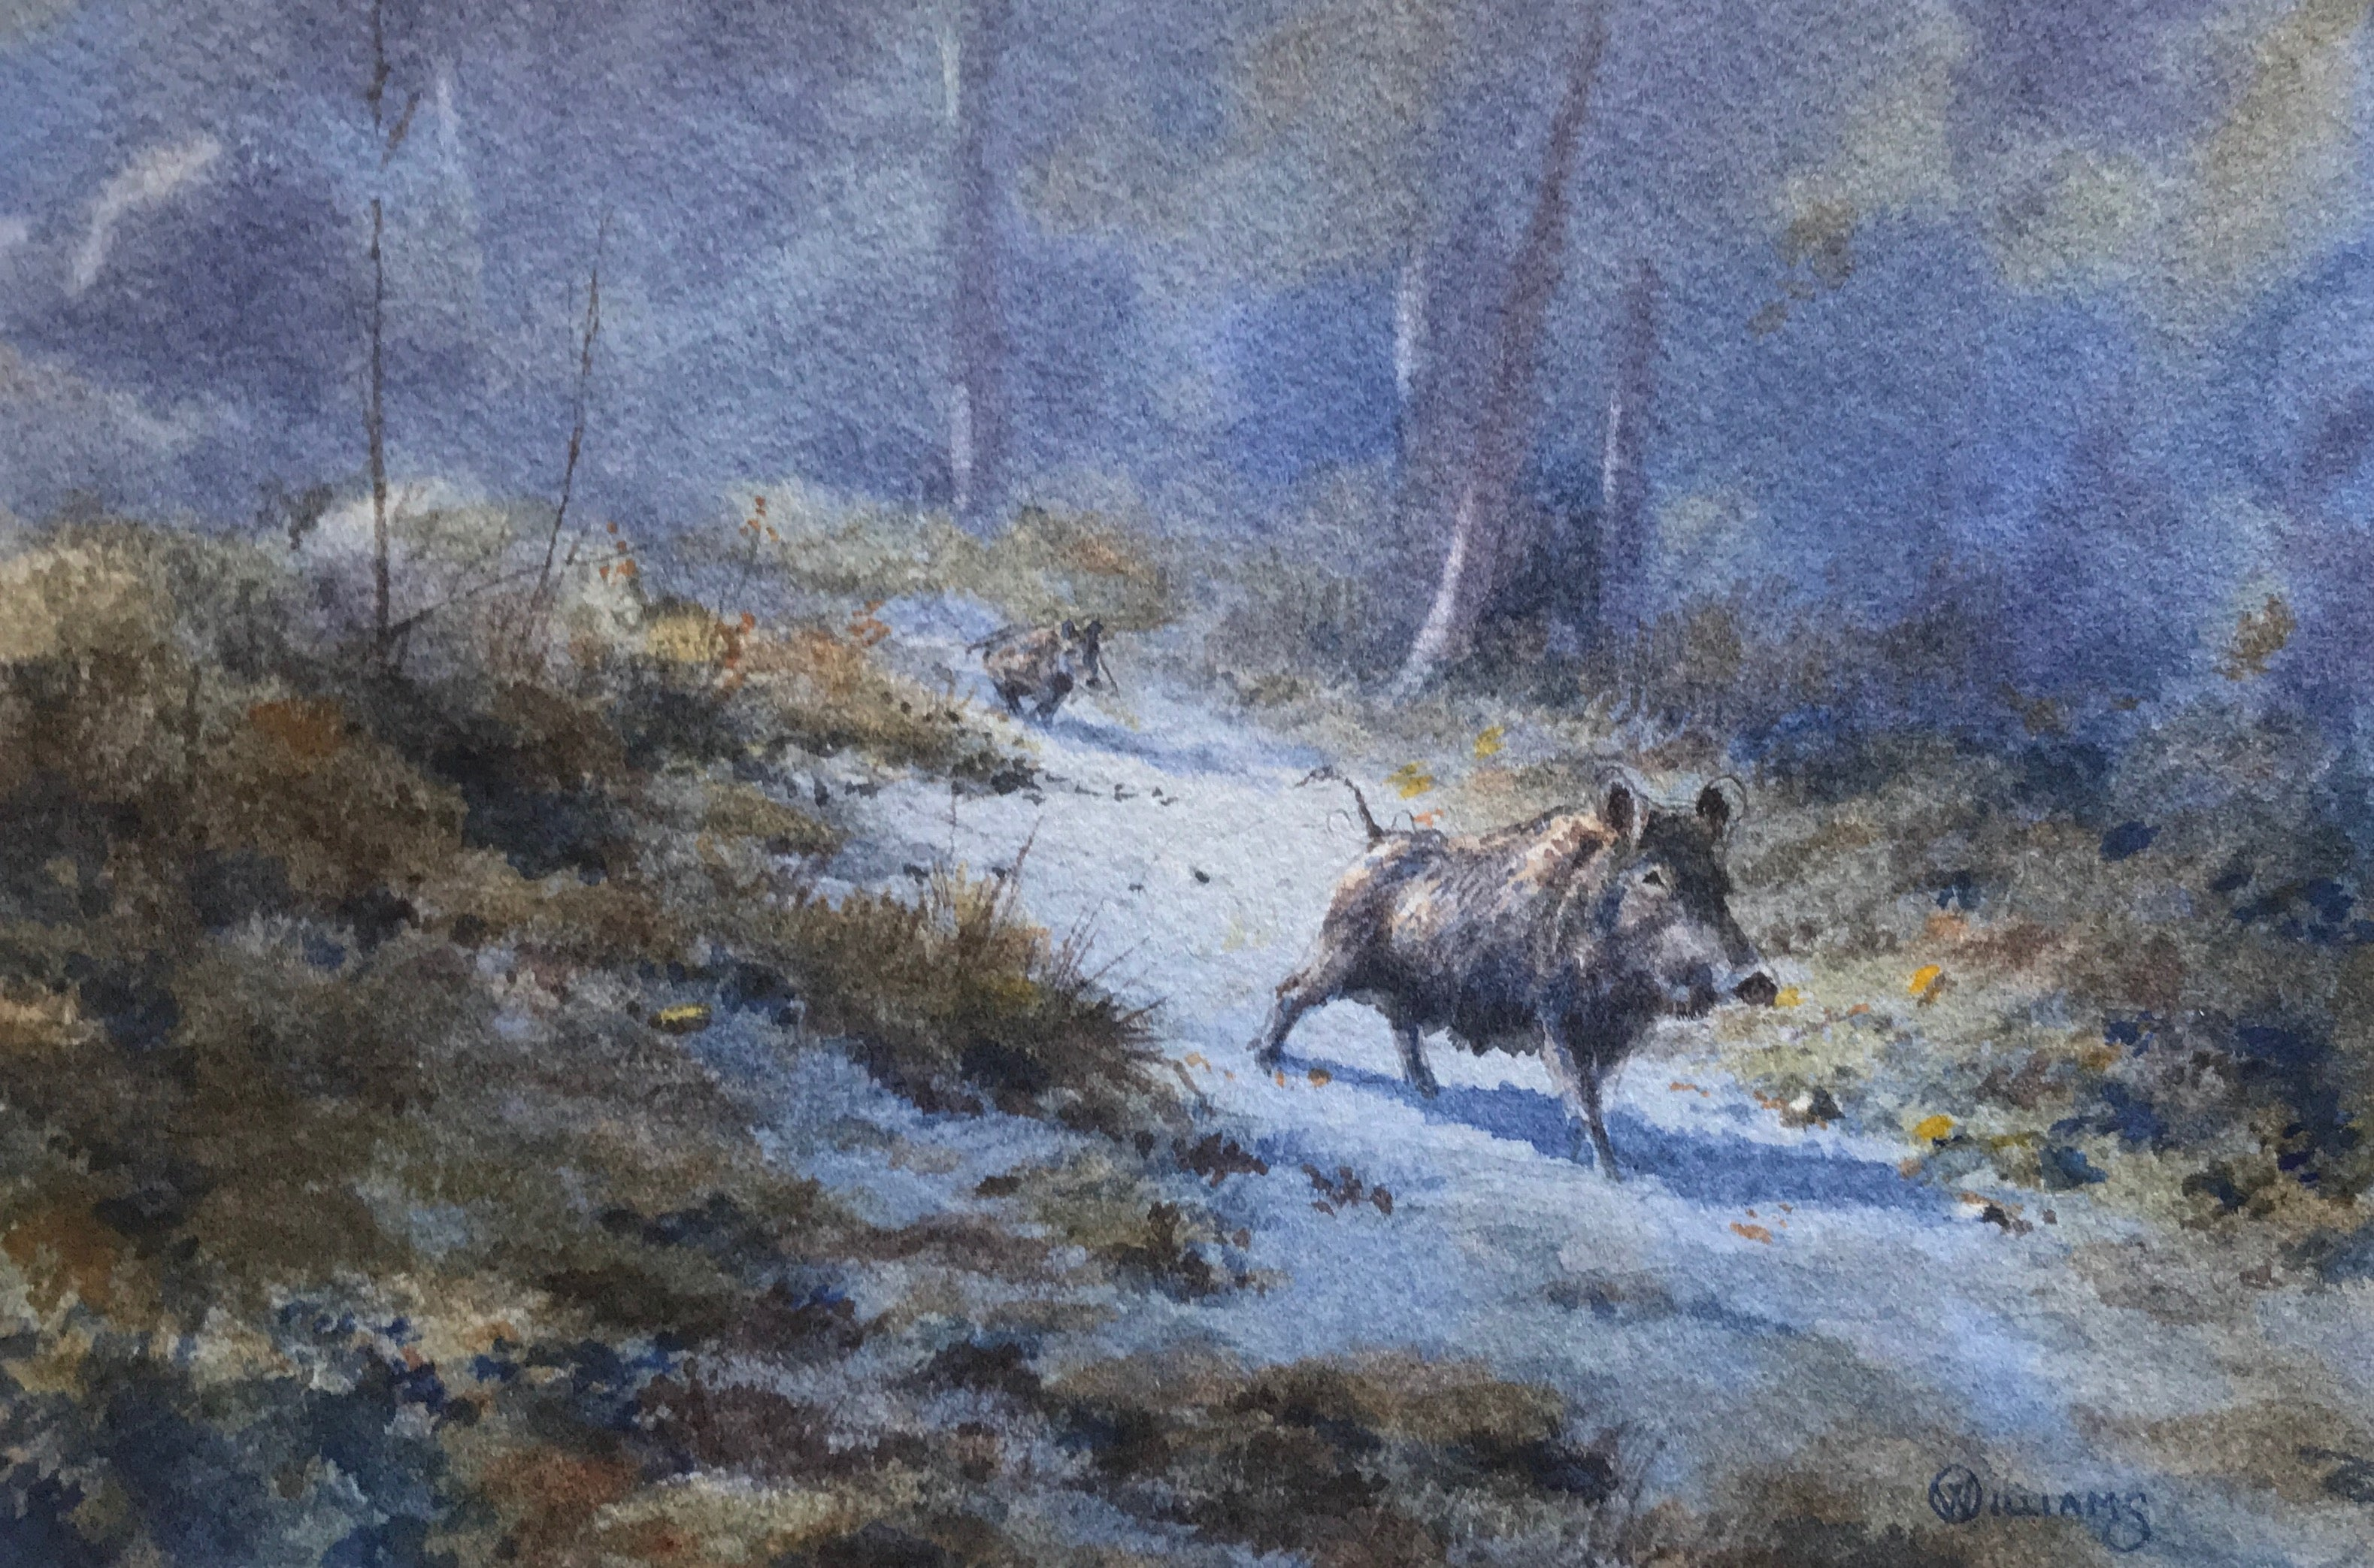 'Running Boar' - Original Watercolour Painting by Owen Williams - 13 x 20cm